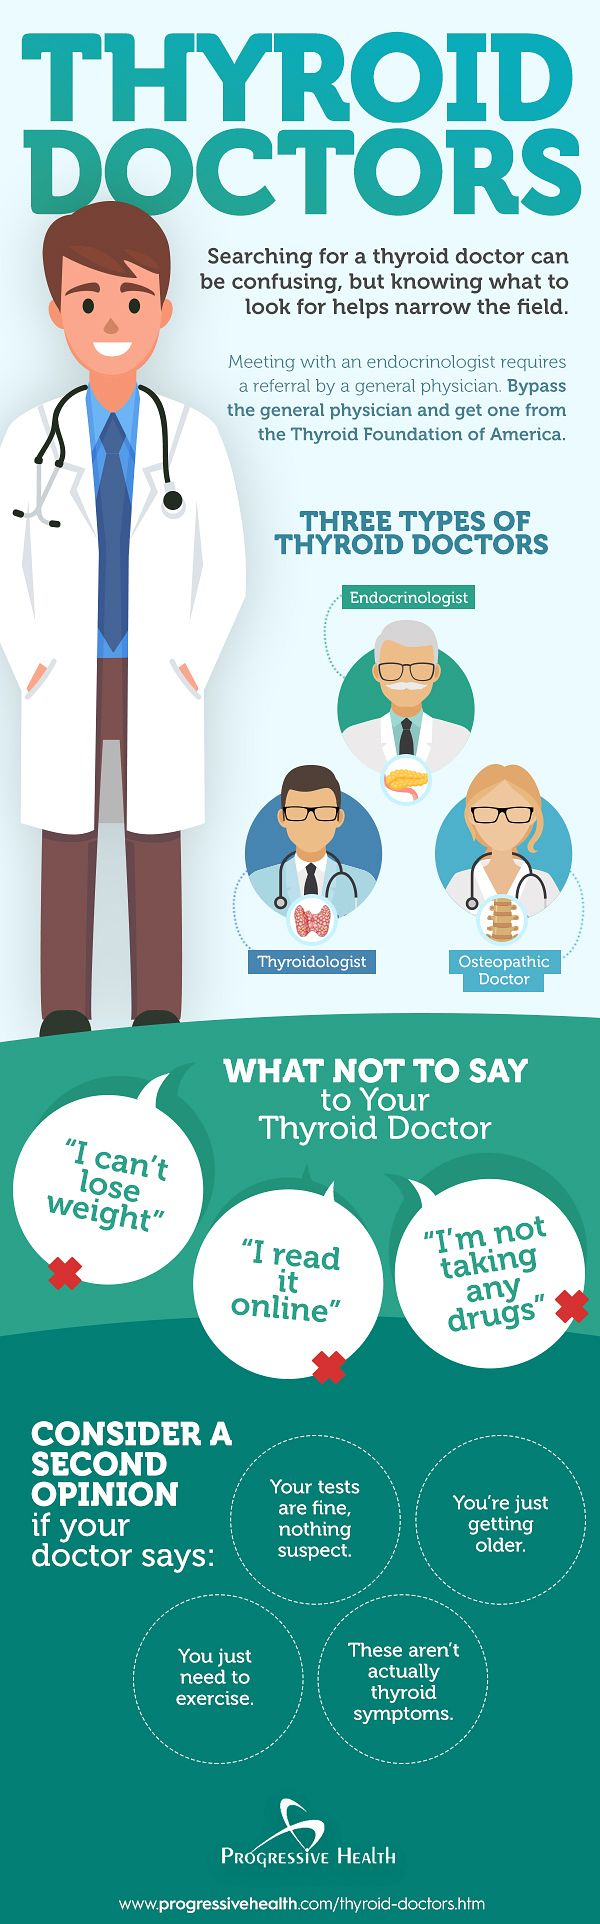 Searching for a thyroid doctor can be confusing, but knowing what to look for helps narrow the field.